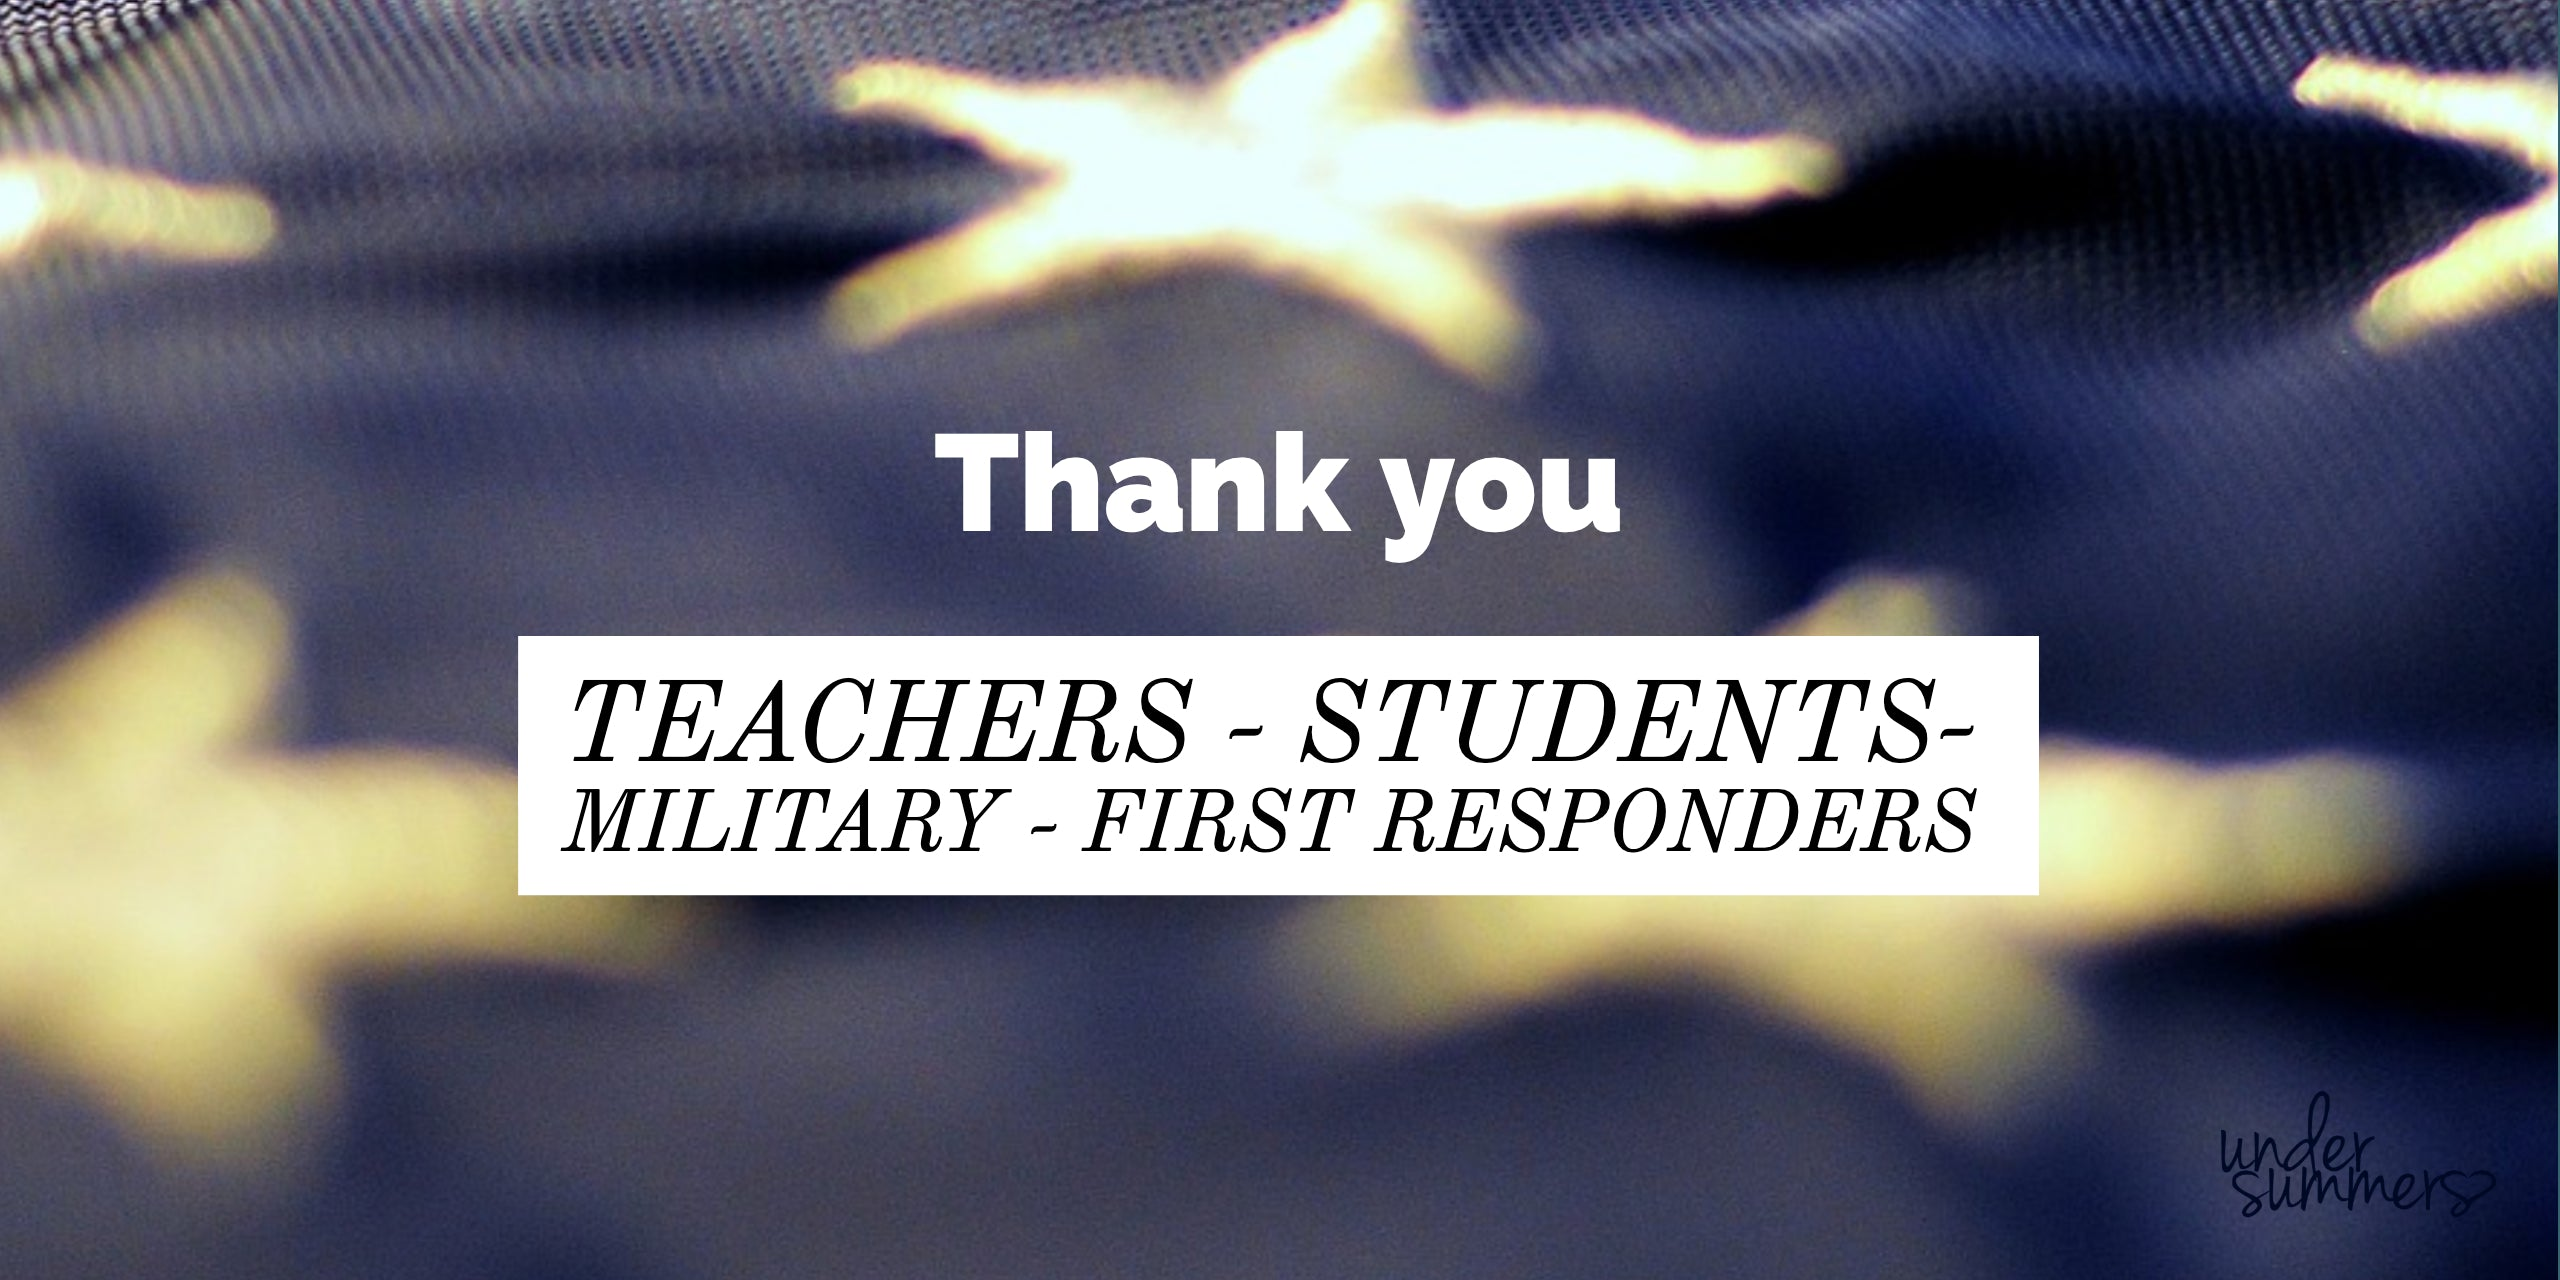 Thank you to our military, vetrans, first responders, teachers, and students.